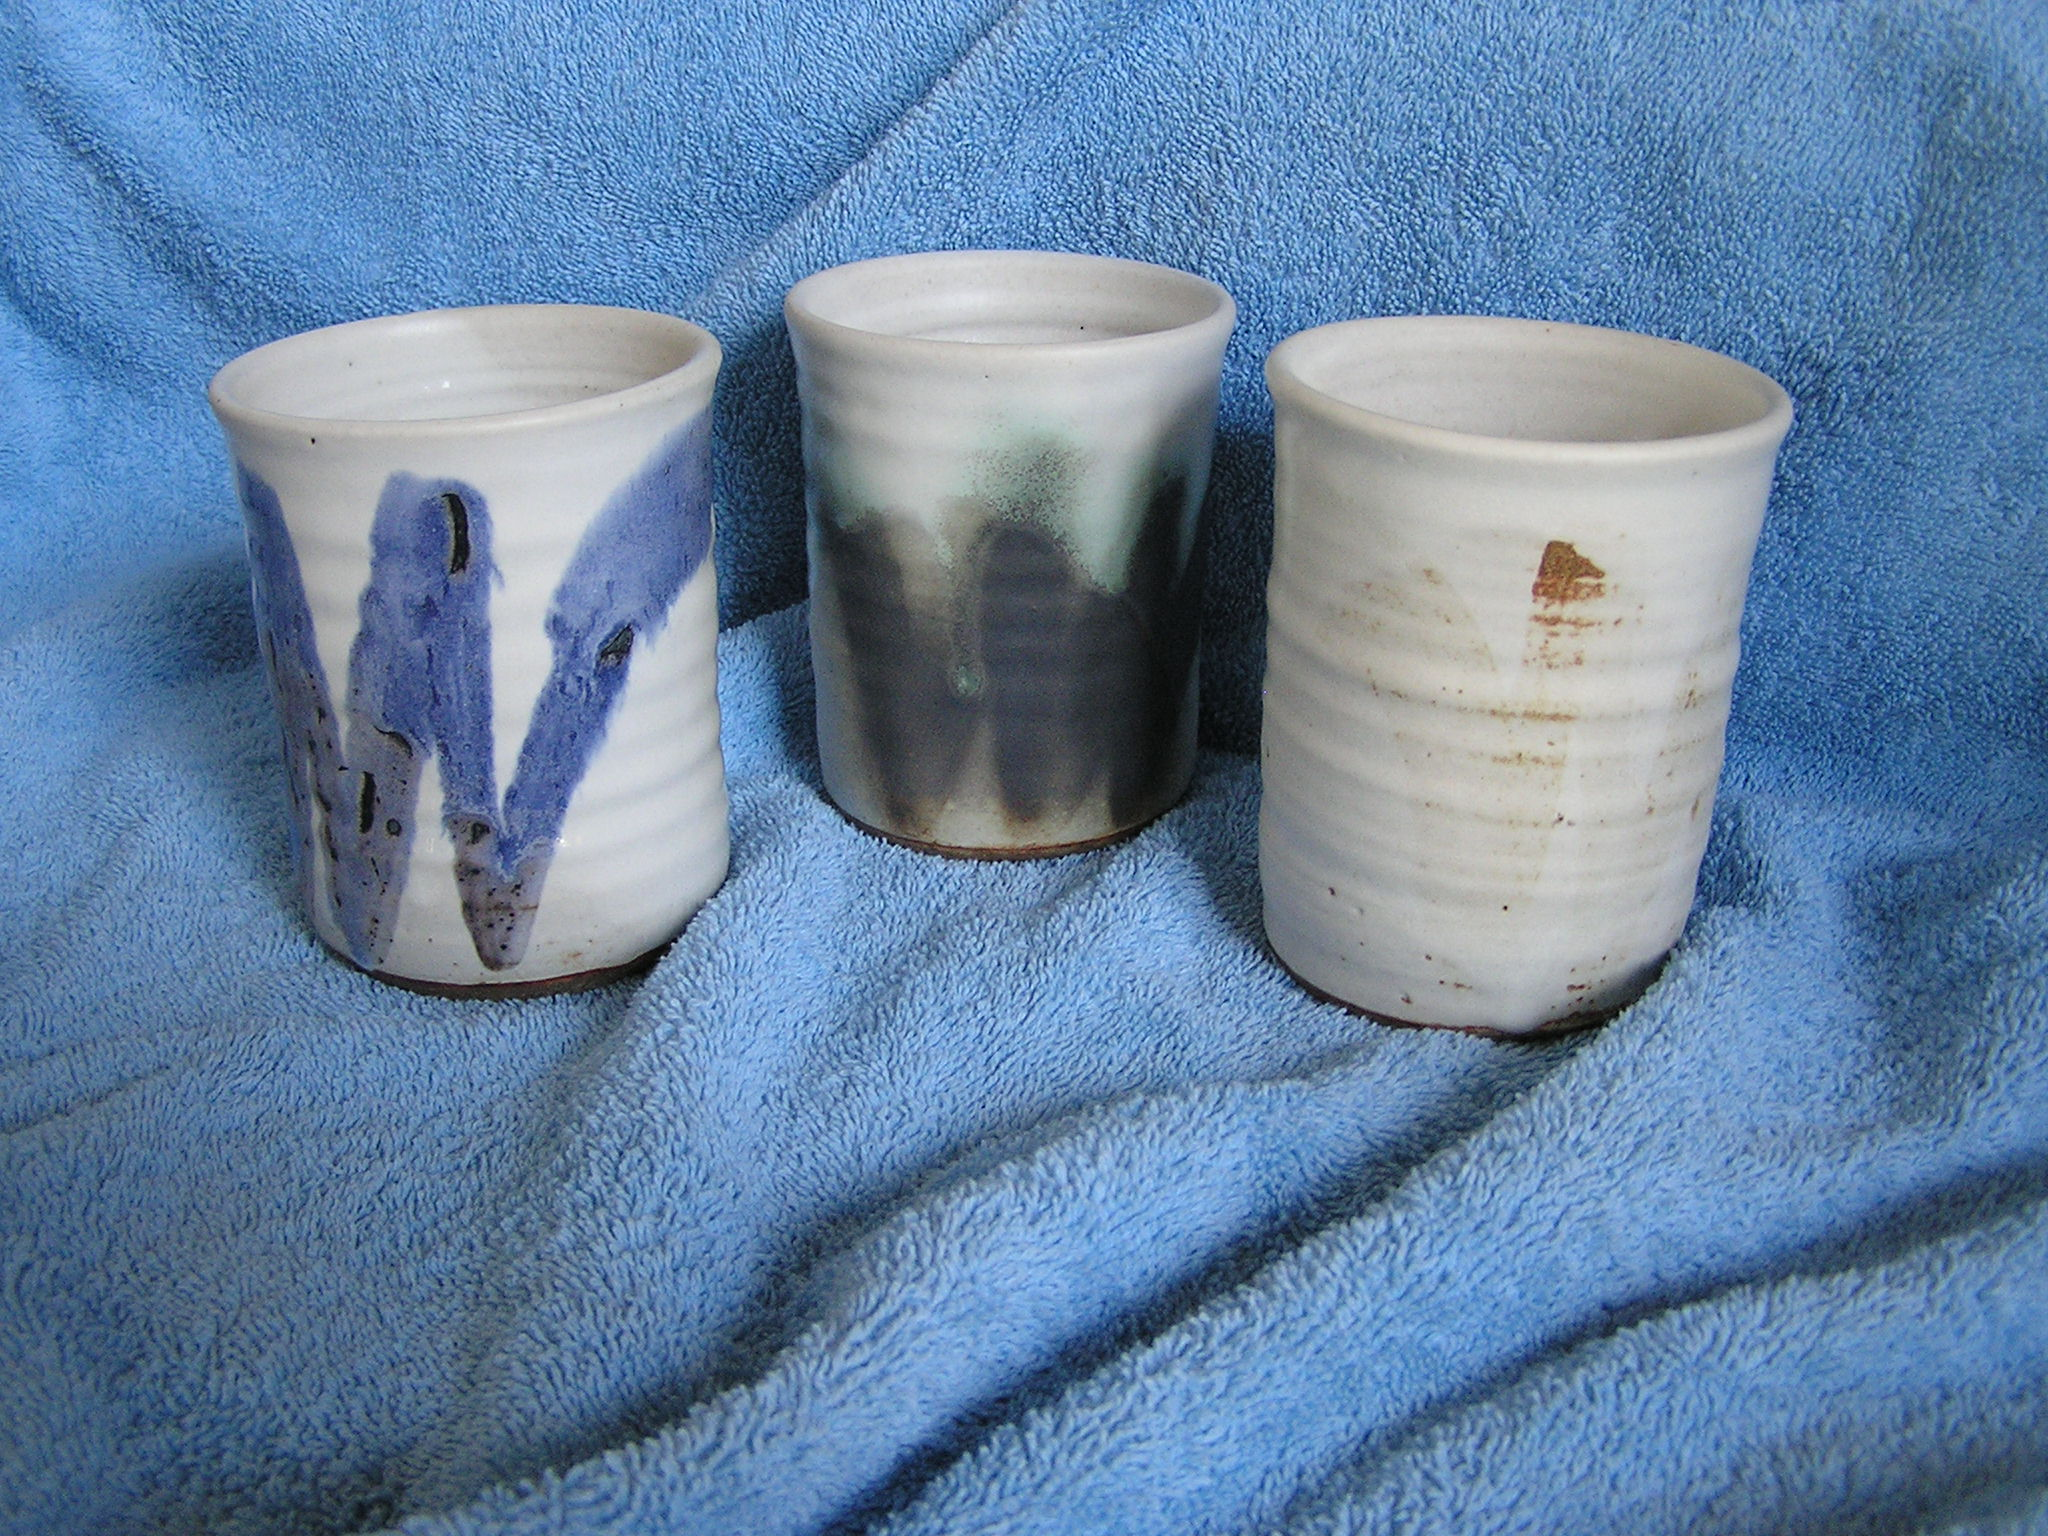 Cup- Tumbler, White Assrt 5 in ($6 each)